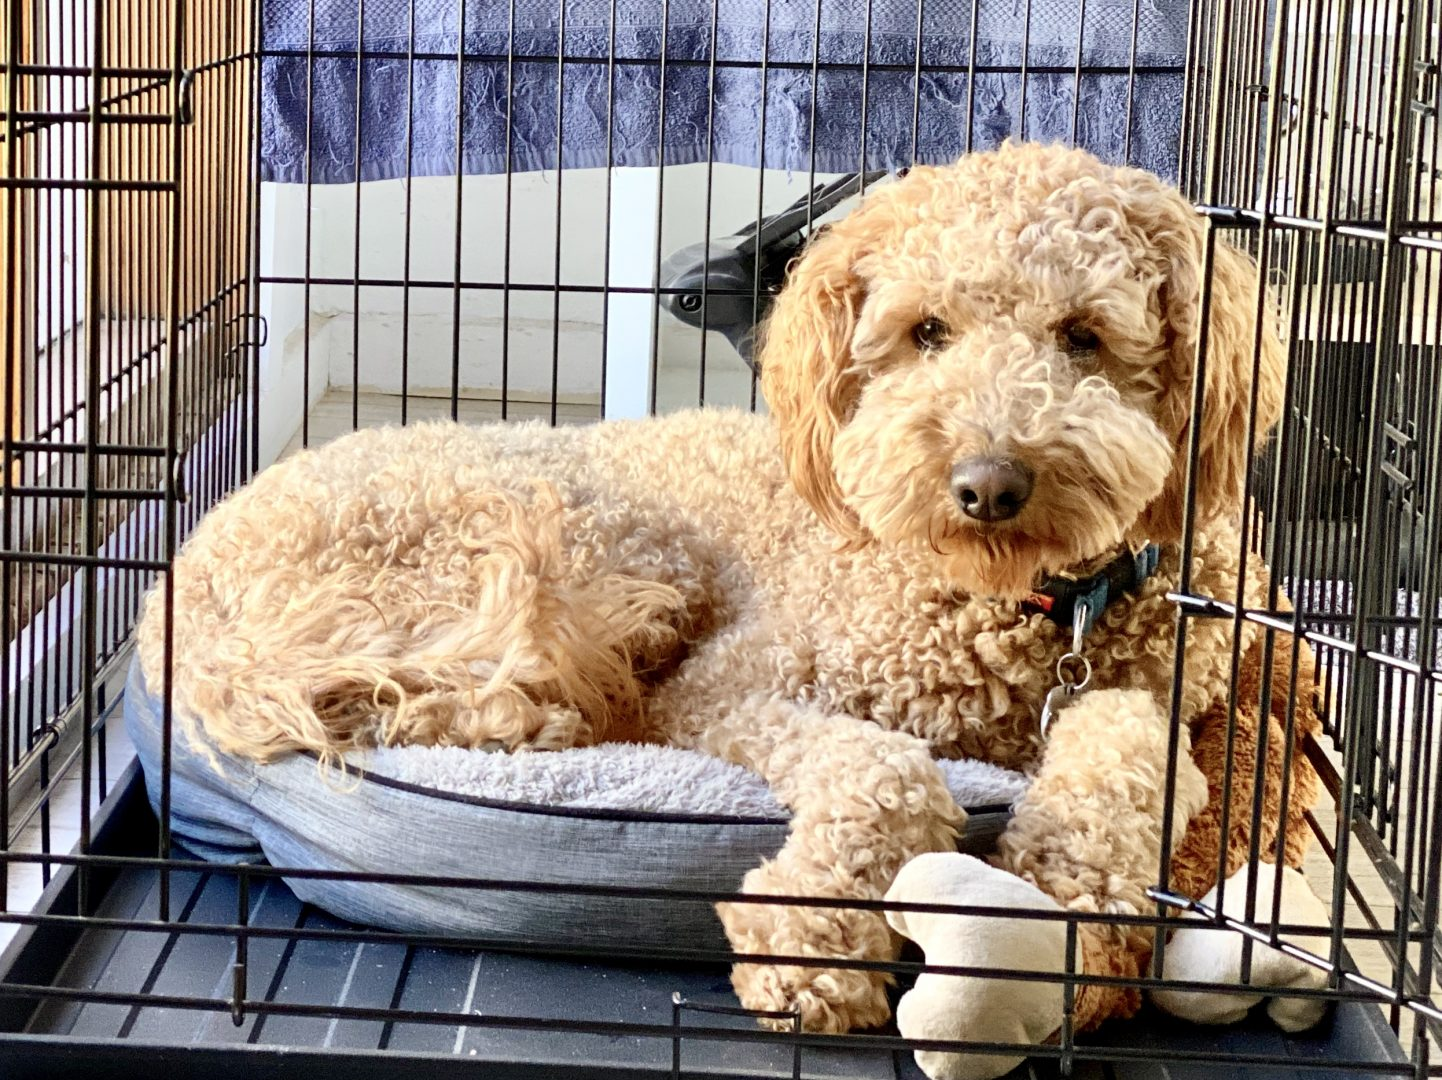 dog trainer, training with tamara ,dog training, puppy training, online dog training, dog walking, dog walker adelaide, trick training for dogs, how to train puppy, best friends, best friend dog training, groodle